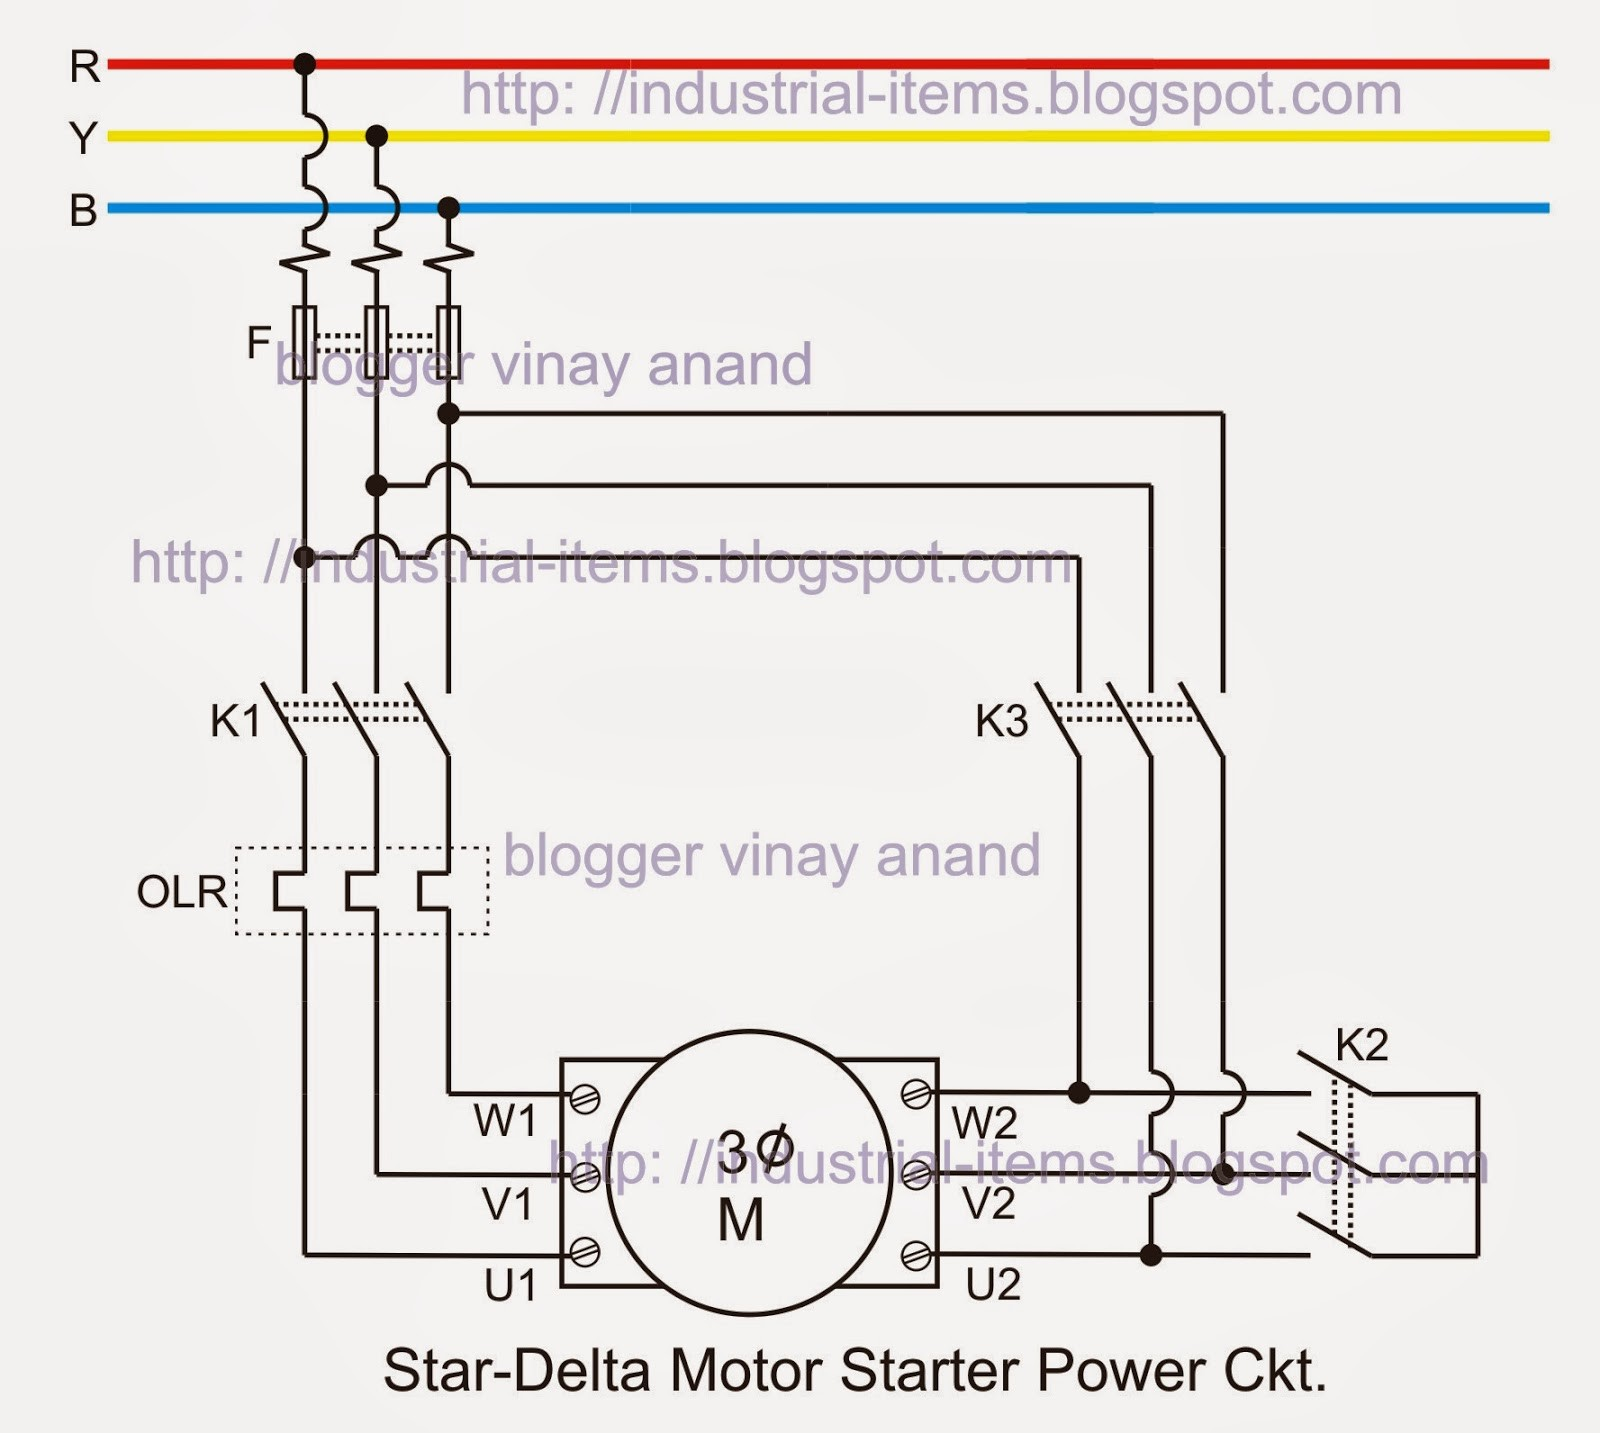 3 phase starter wiring diagram patent us method starting a 3 phase starter wiring diagram tutorials articles star delta starter theory power circuit phase of 3 cheapraybanclubmaster Images